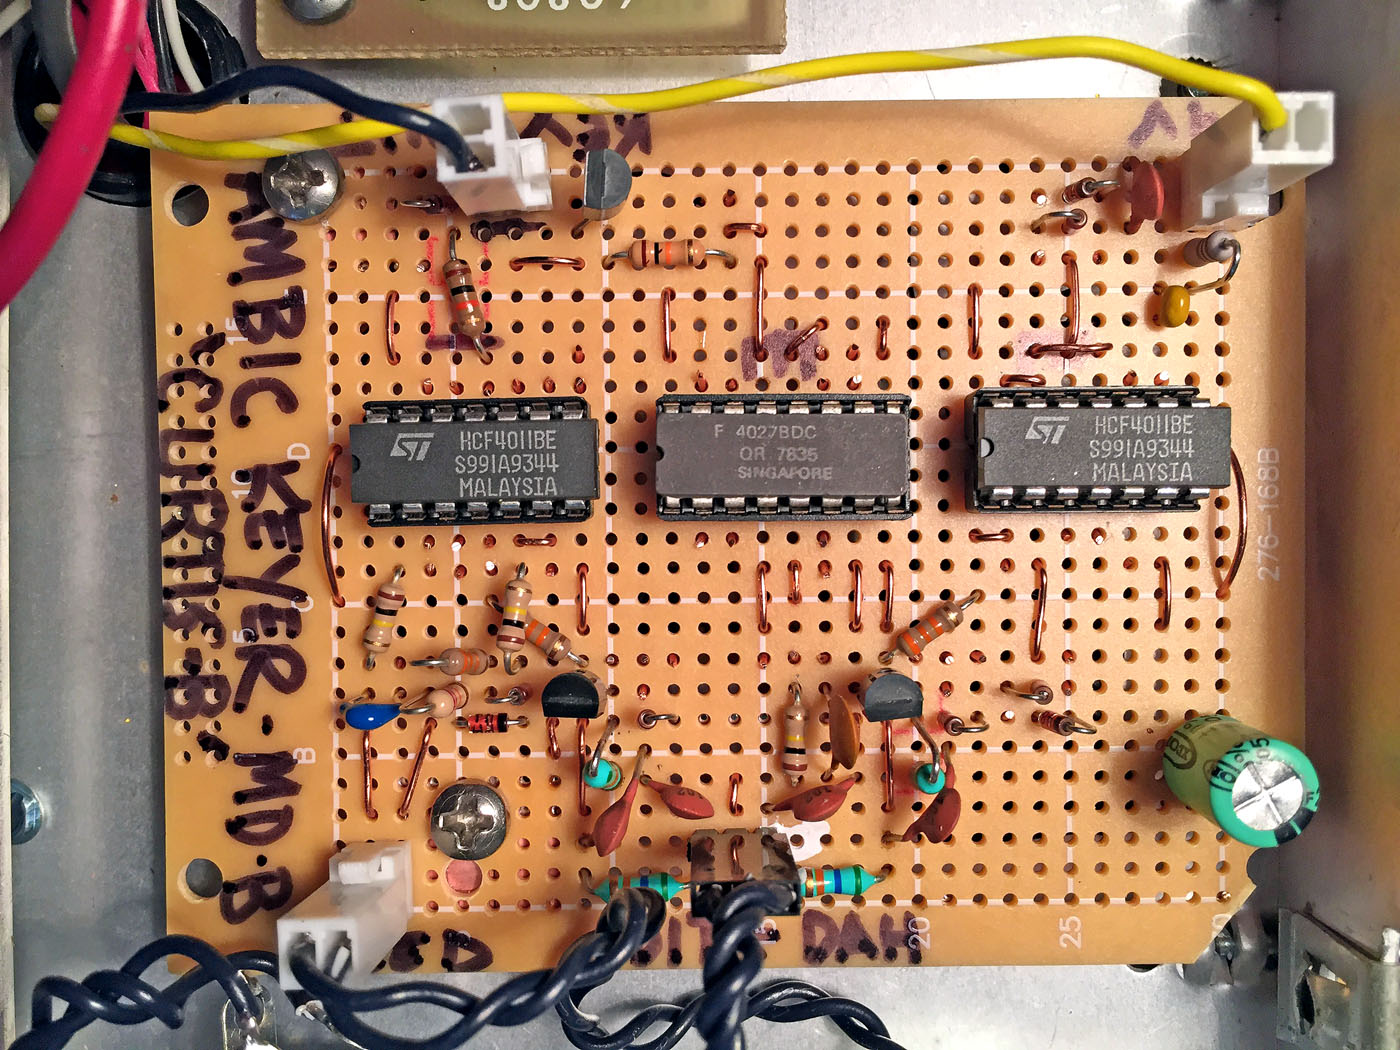 Iambic Keyer Circuit K4icy Minty 3 Ic Electronic Cw Integrated Looks Like A Bug Kool By Mike